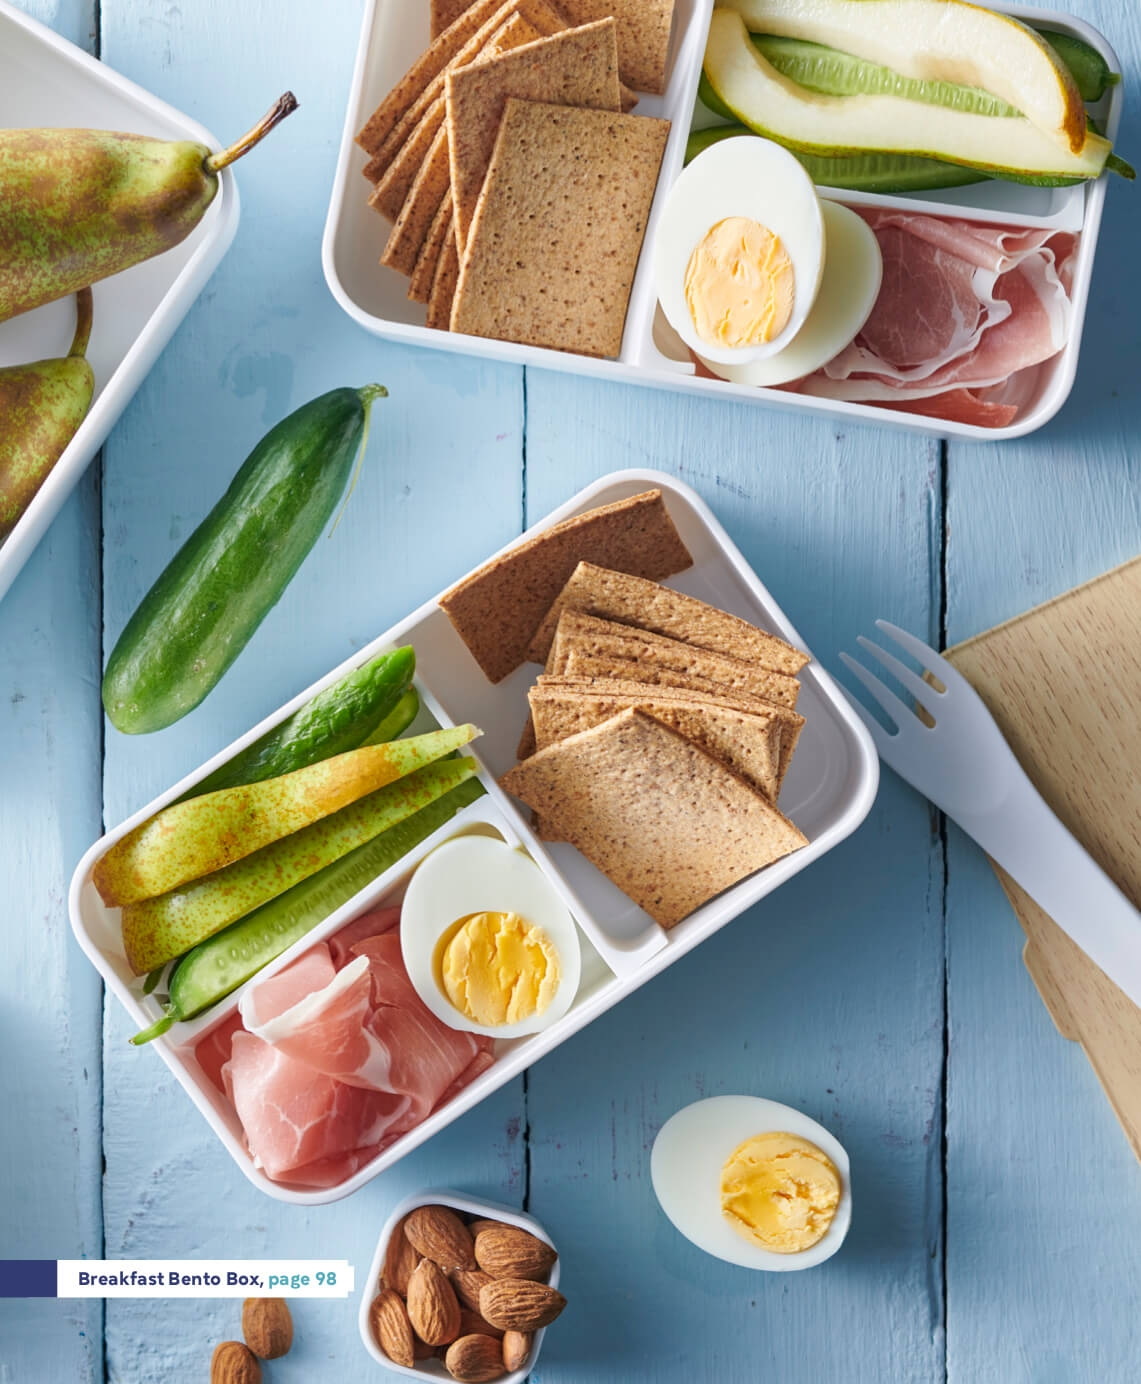 white wood background with breakfast bento box containing sliced Persian cucumber, sliced pear, crispbread, hard boiled eggs, prosciutto slices and unsalted almonds